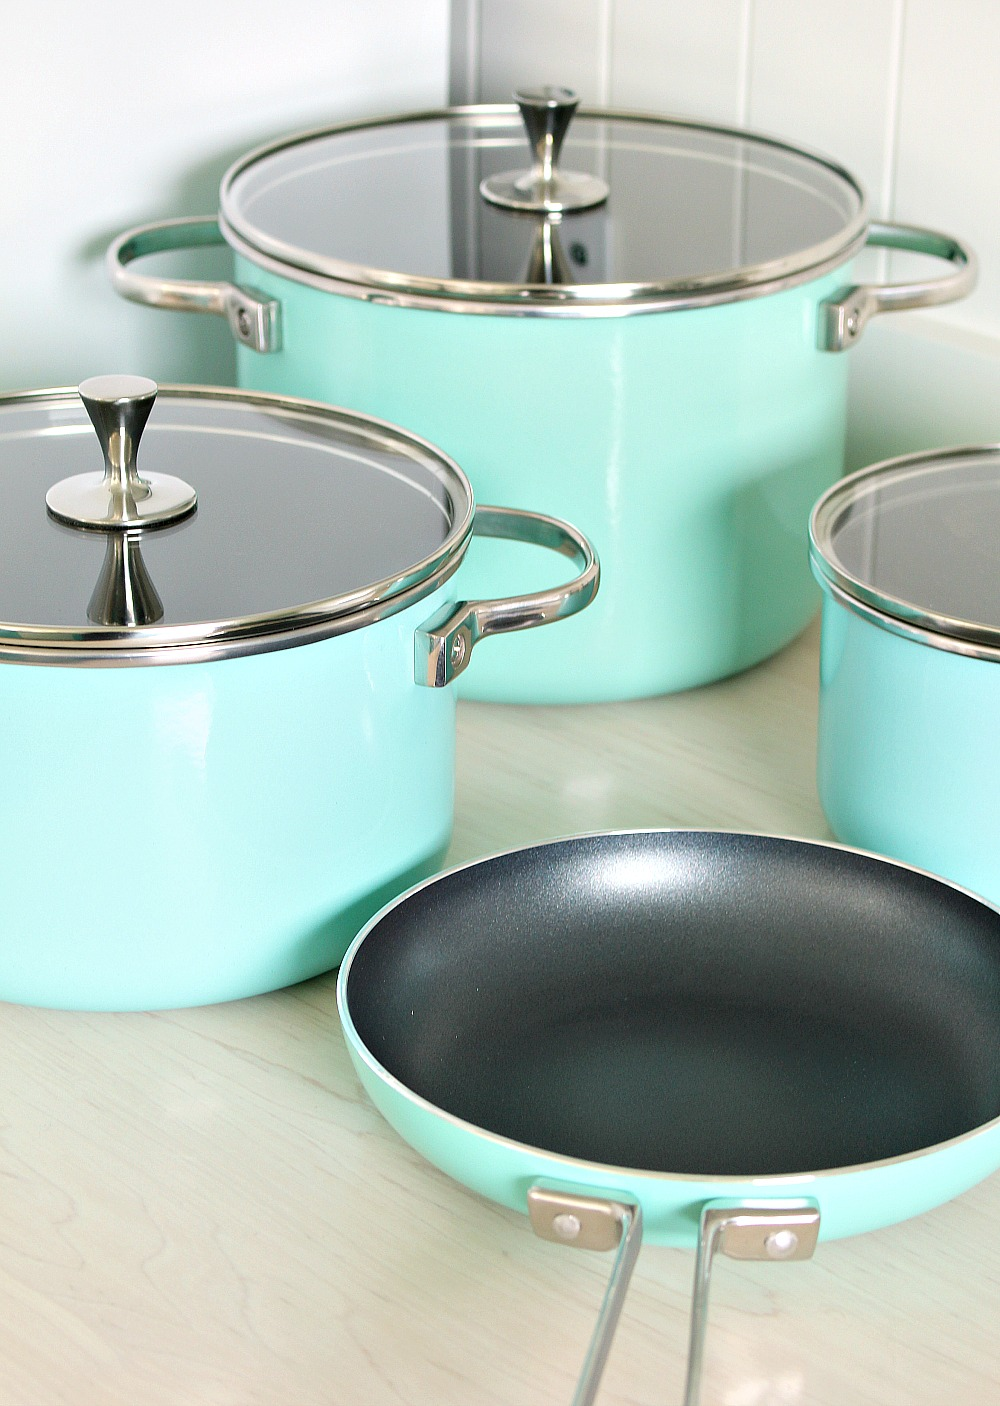 Kate Spade Turquoise Pots and Pans